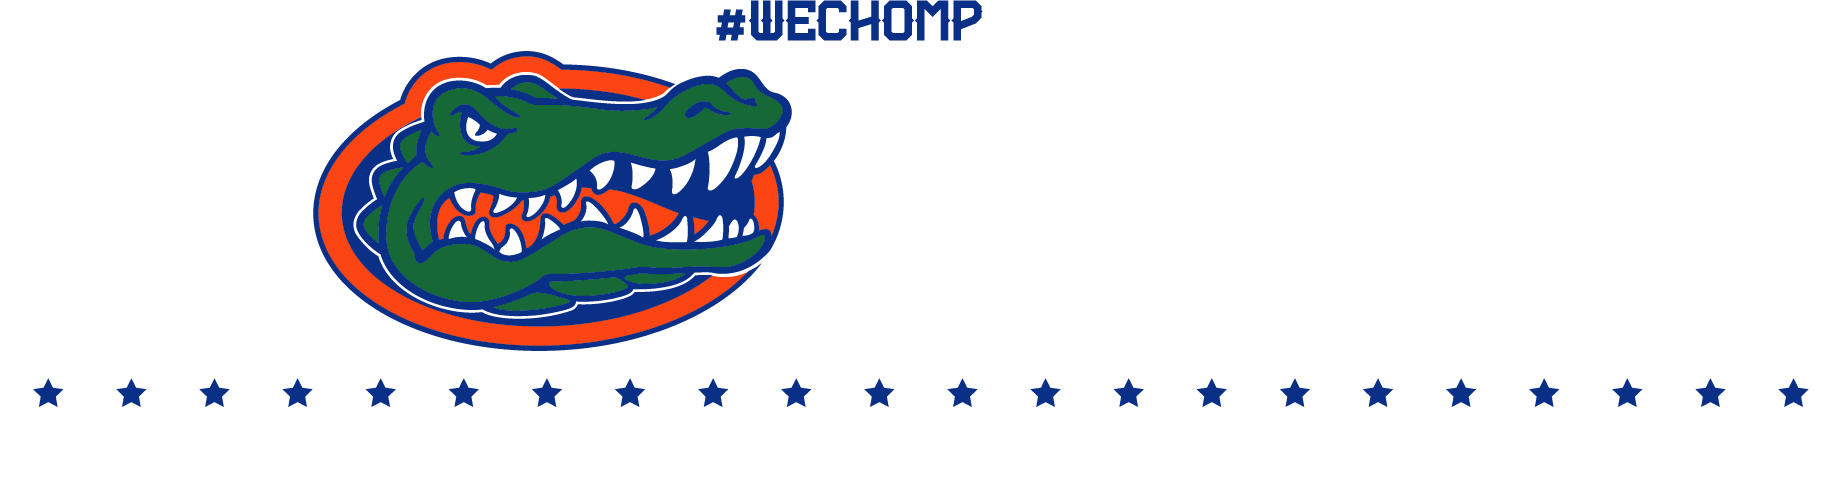 Uf football clipart vector library stock WeChomp in CHOMPVILLE, TEXAS vector library stock